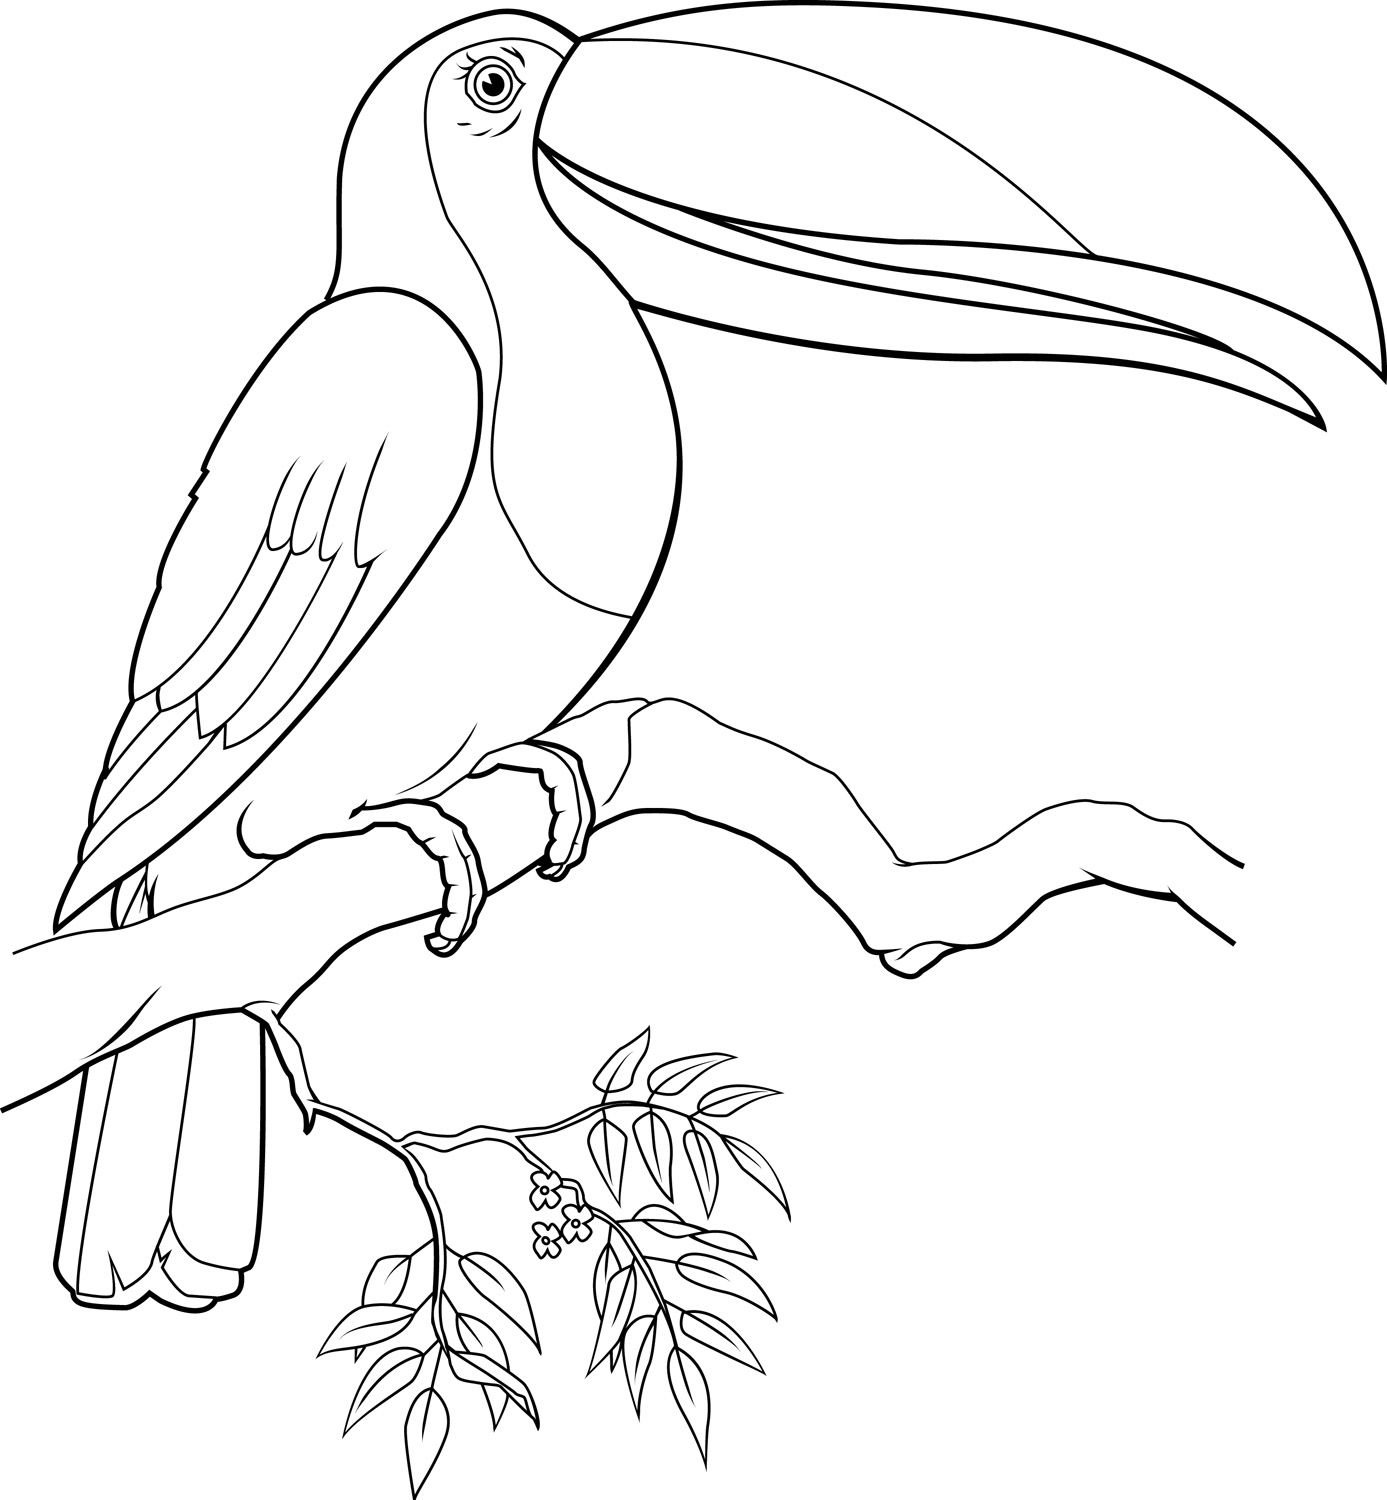 Coloring Page Of A Toucan Bird